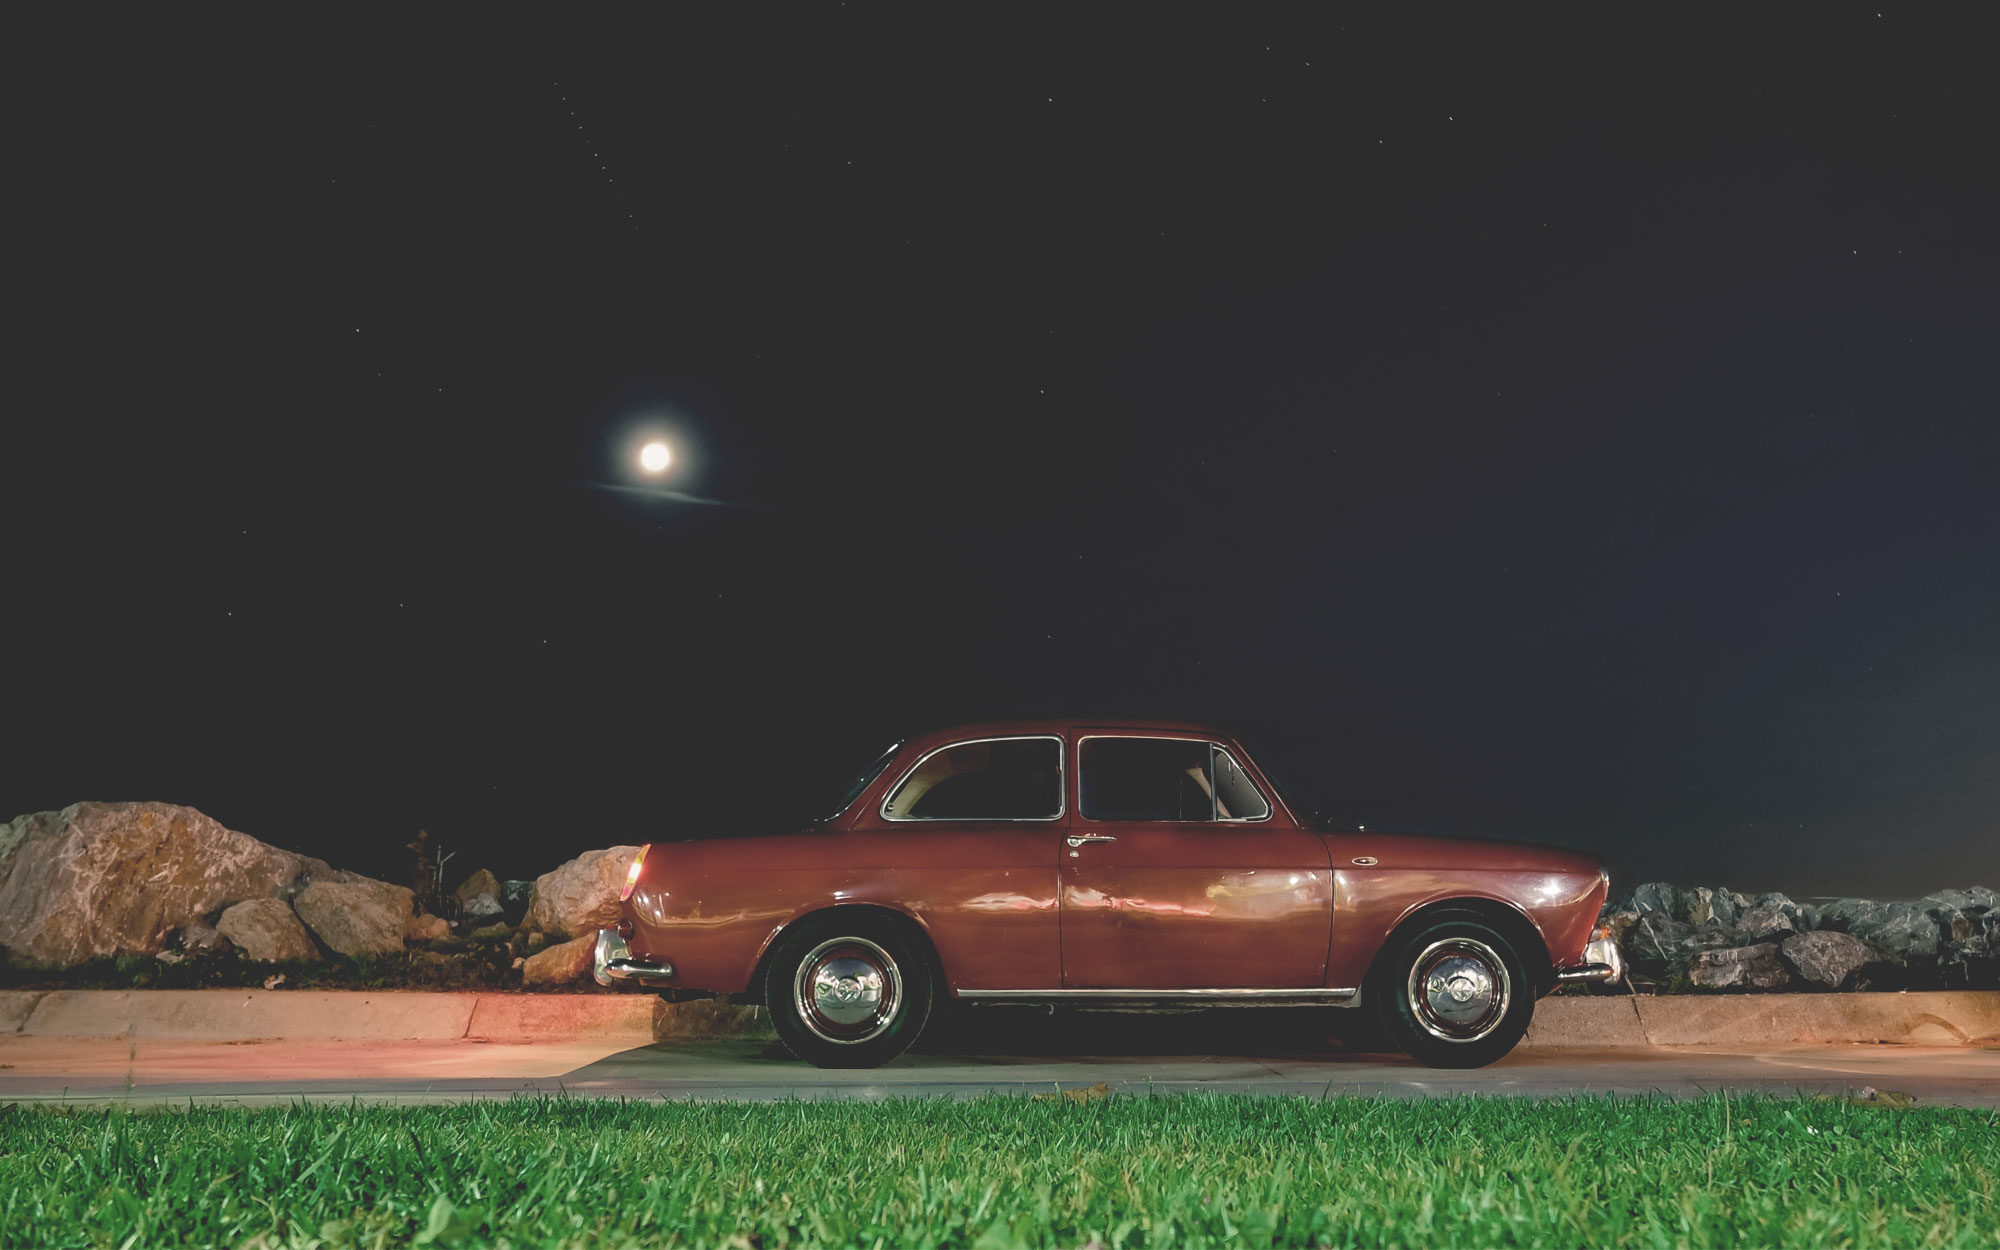 Old car at night